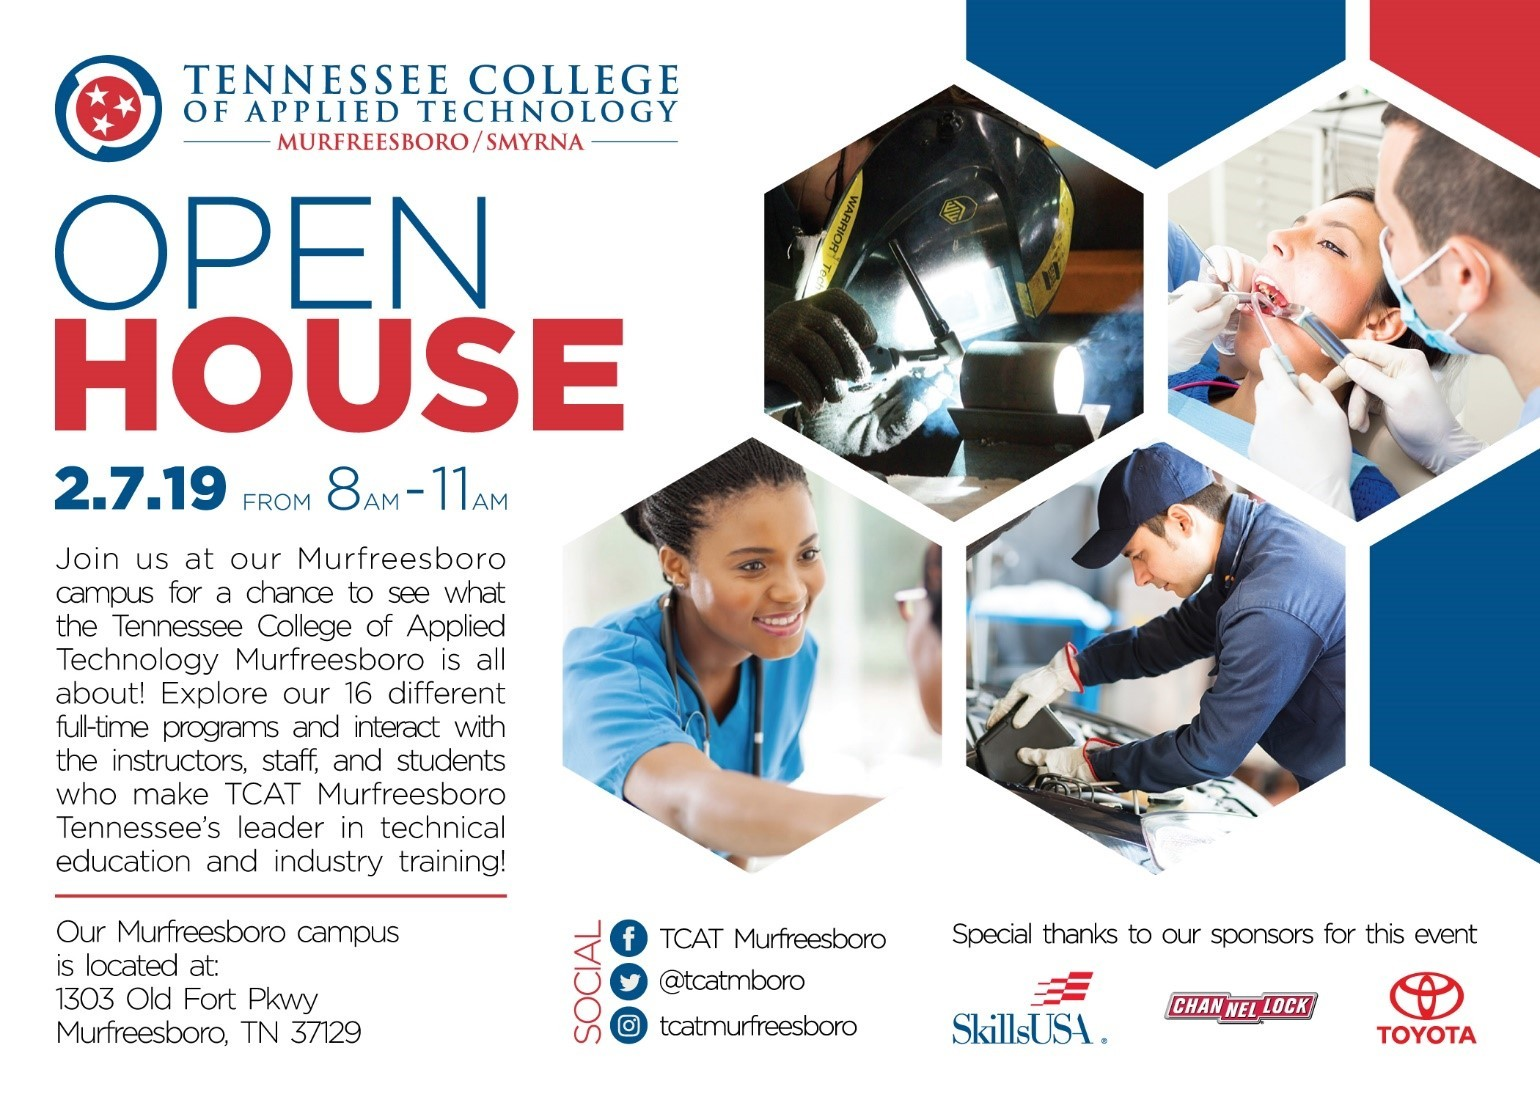 Open House 2/7/19